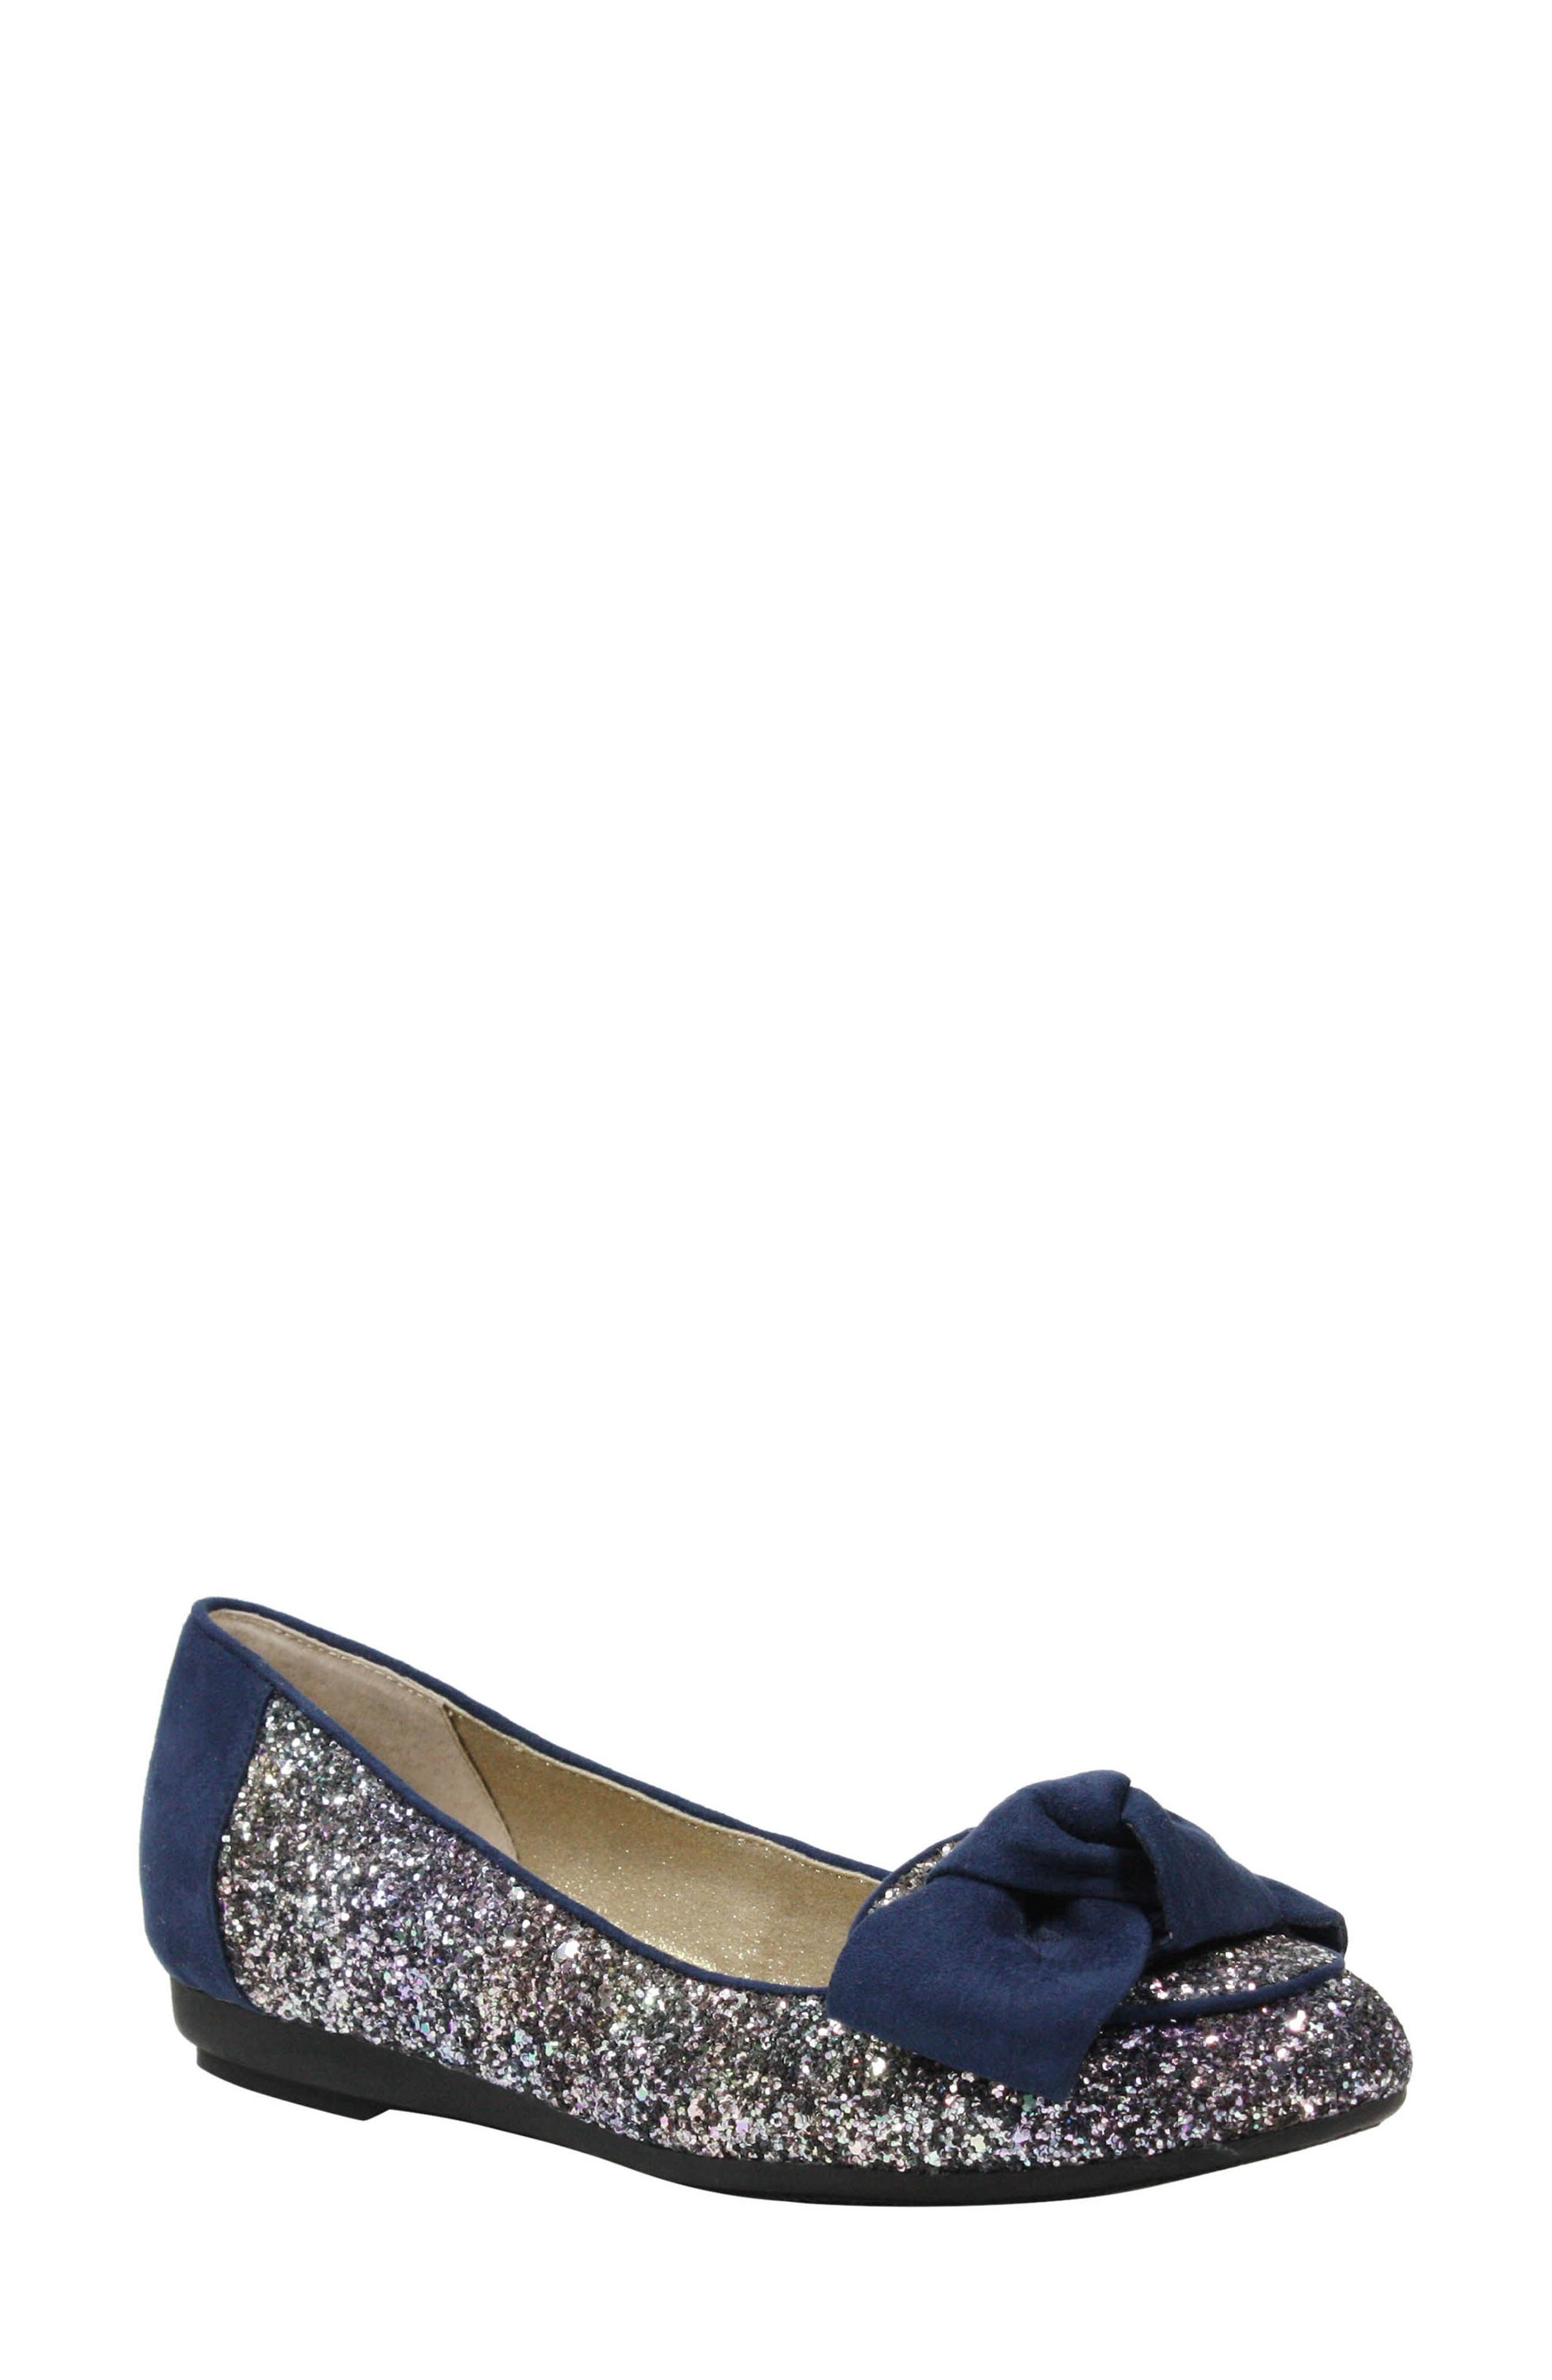 Bacton Flat,                         Main,                         color, Blue/ Gold Glitter Fabric